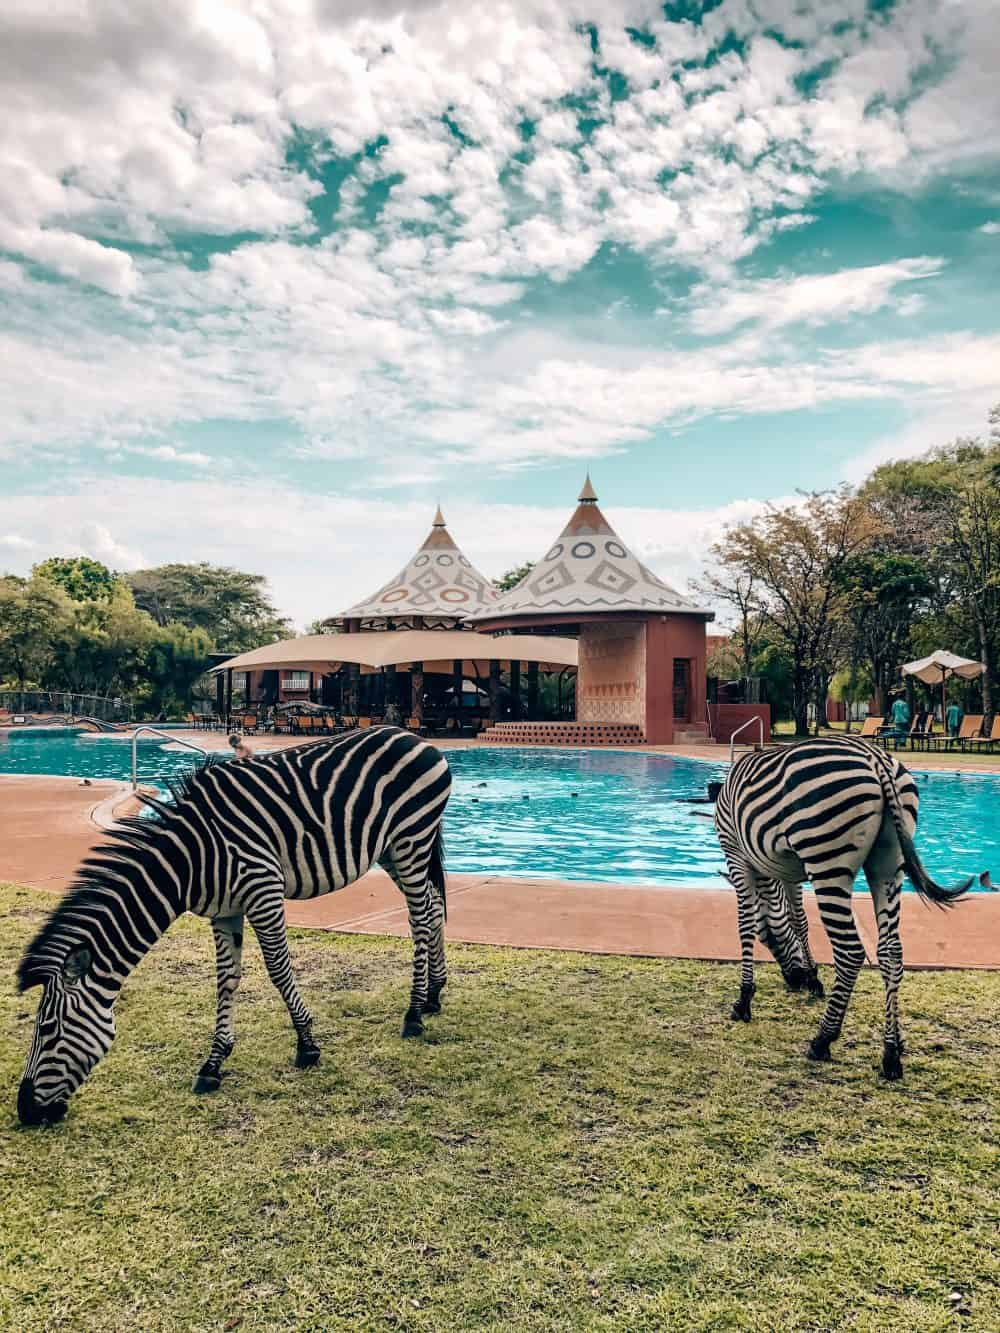 Zebras by the pool at the Avani Victoria Falls Resort